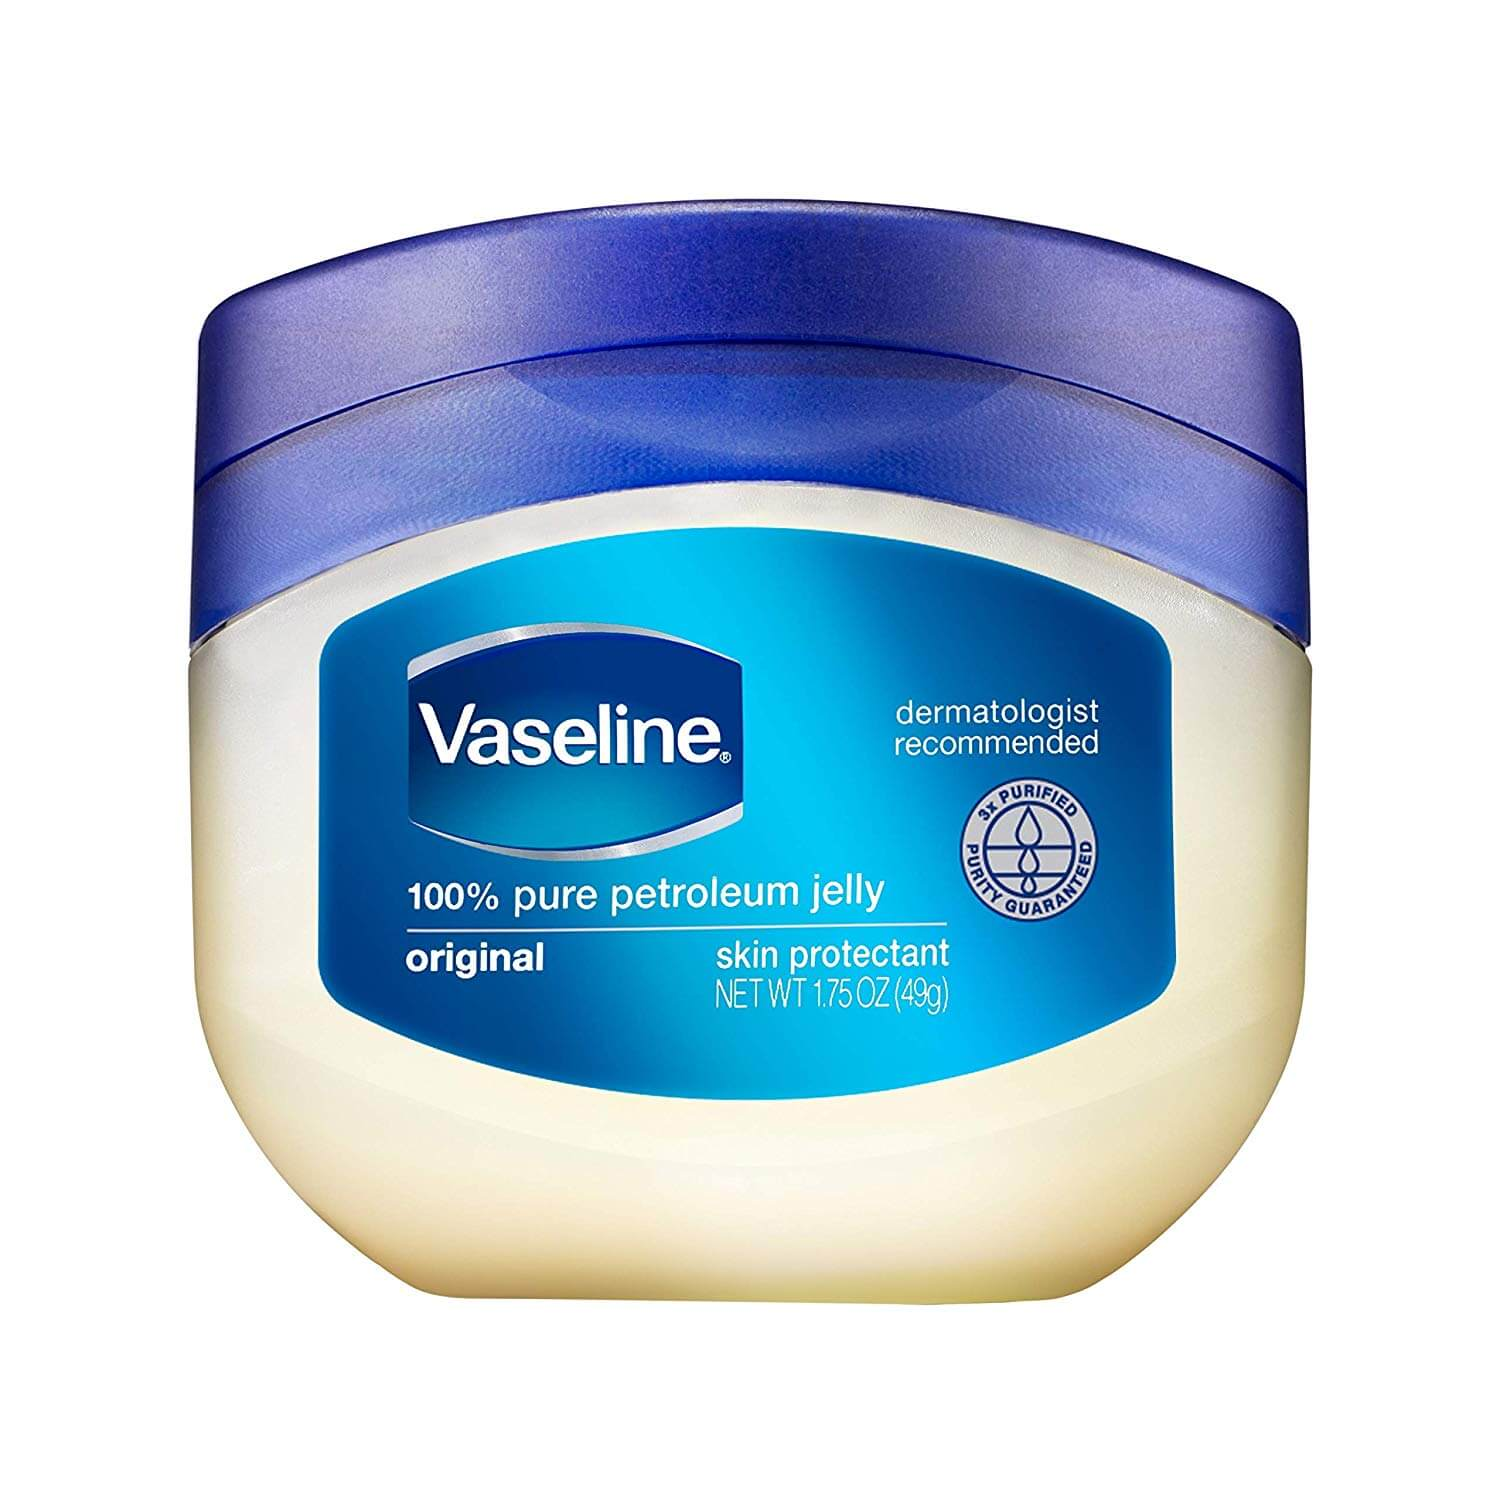 Vaseline 100% pure petroleum jelly skin protectant for various vaseline uses